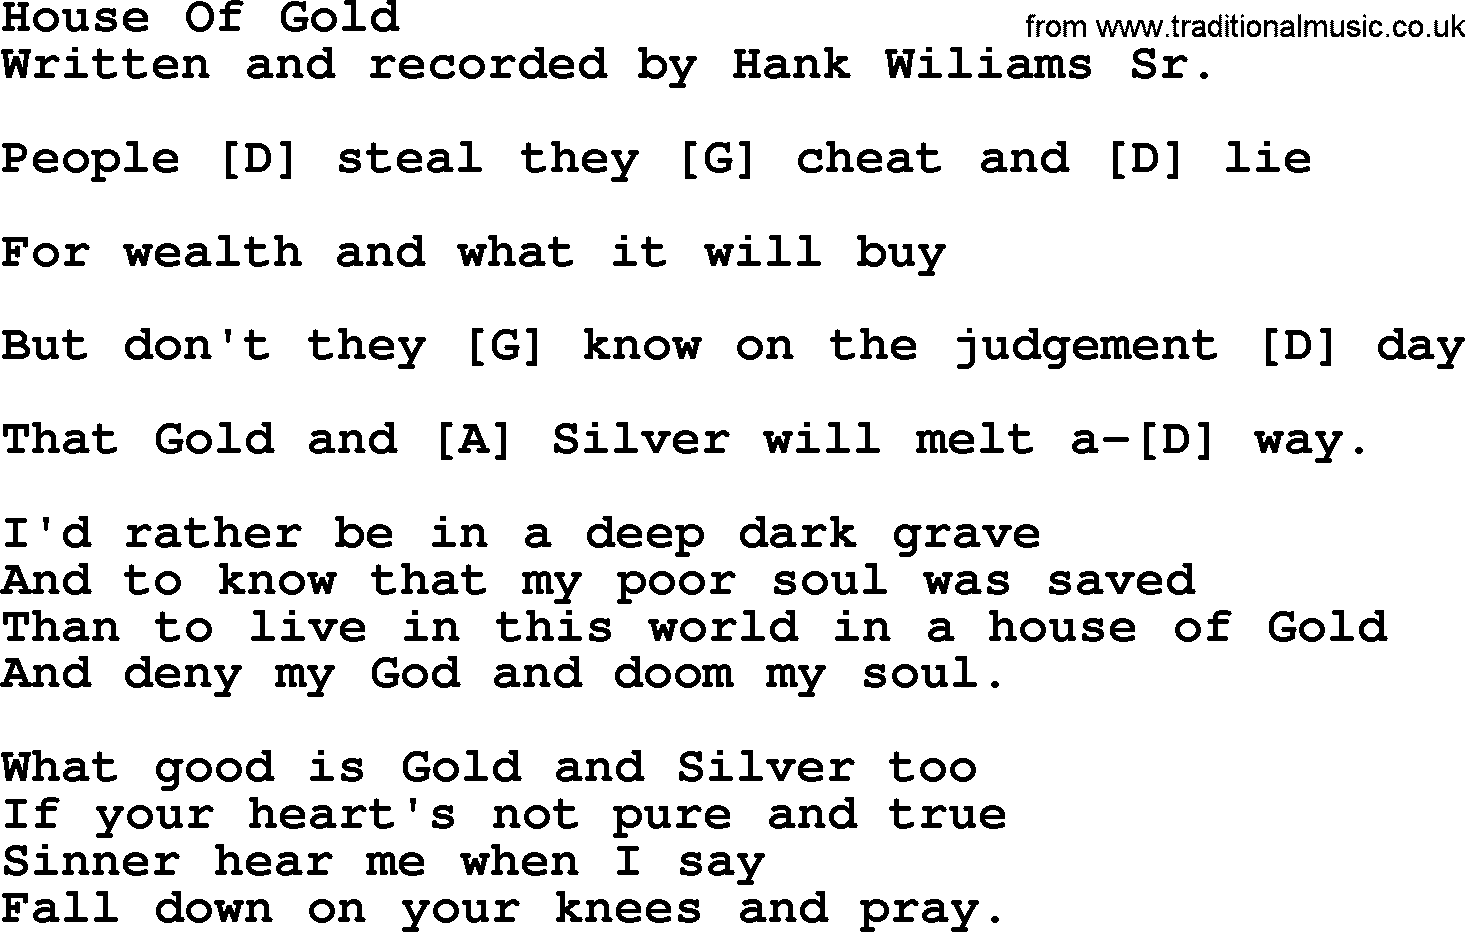 A House of Gold - Hank Williams - YouTube